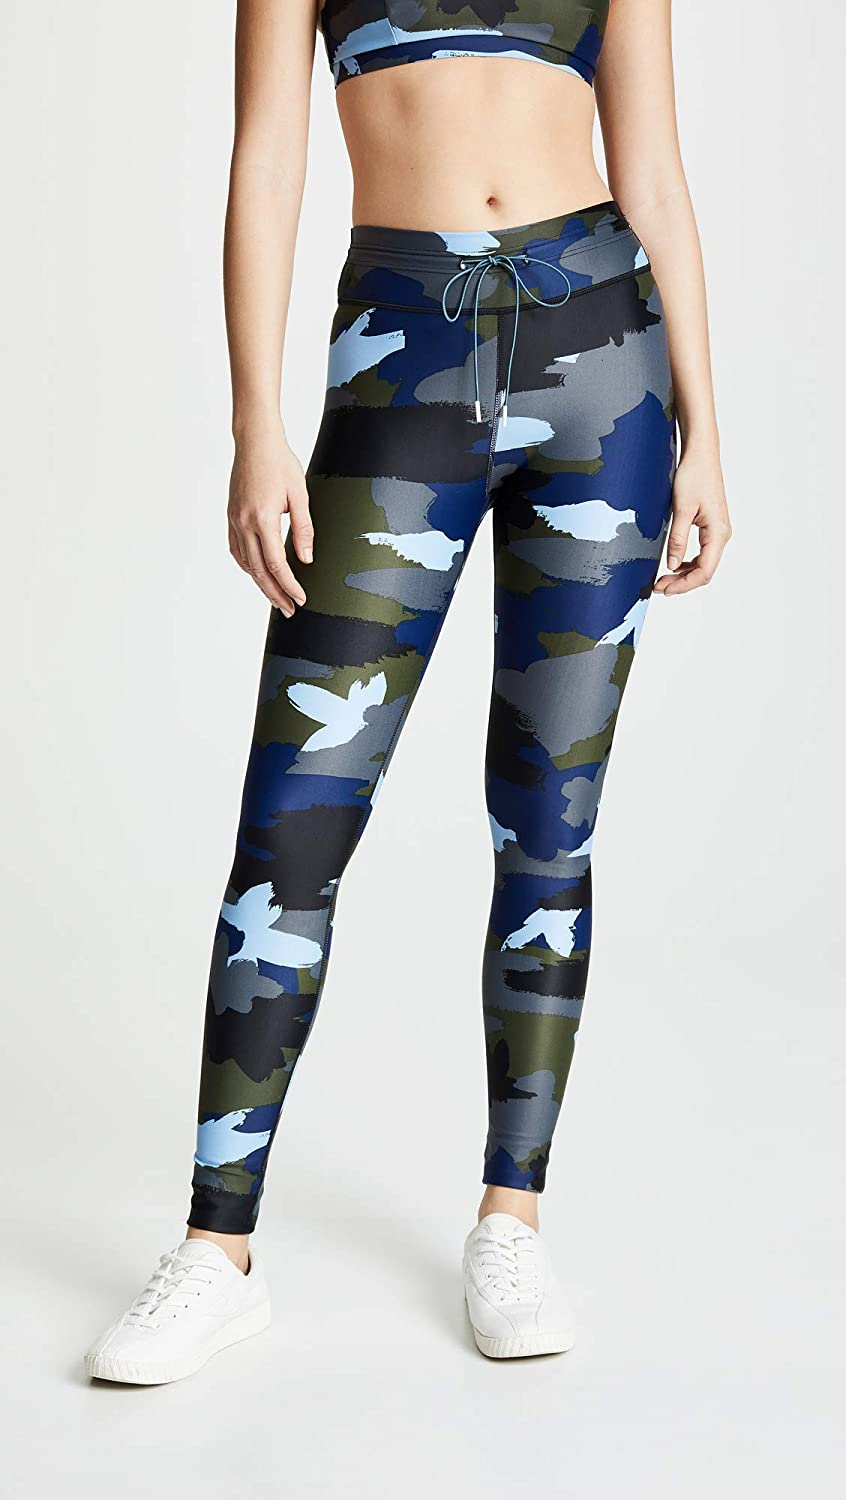 18e5da6910 The Upside Women's Abstract Camo Yoga Pants at Amazon Women's Clothing  store: